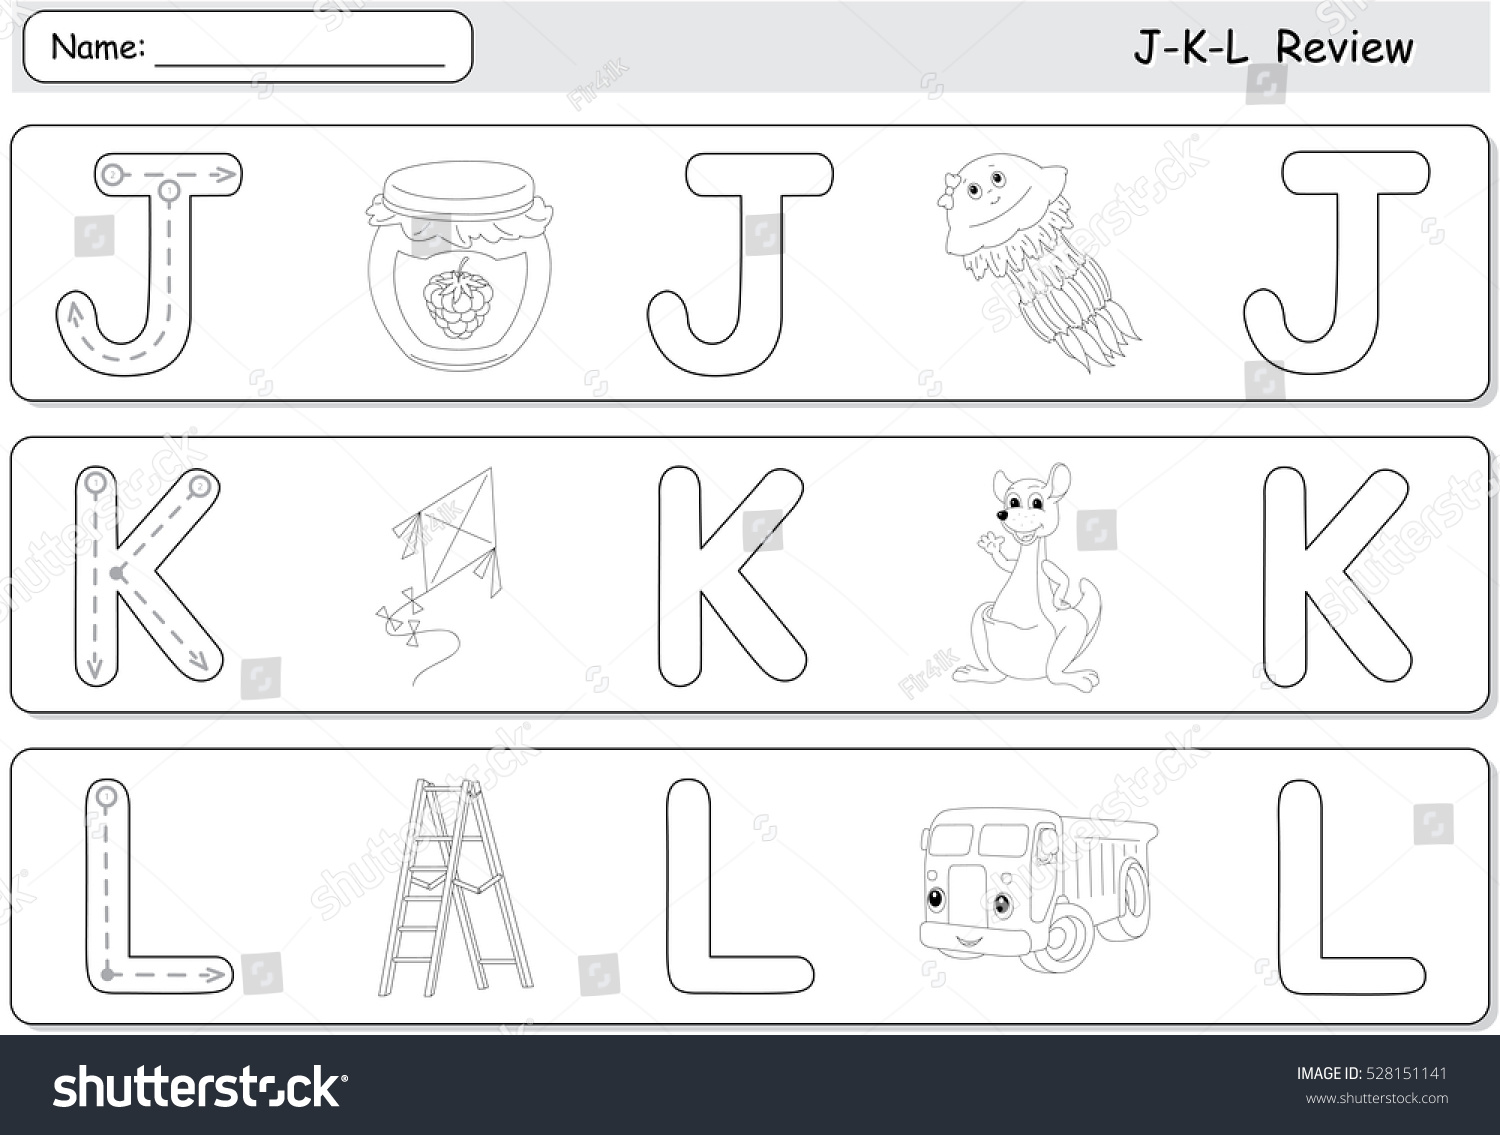 Cartoon Jellyfish Jam Kite Kangaroo Lorry And Ladder Alphabet Tracing Worksheet J K L